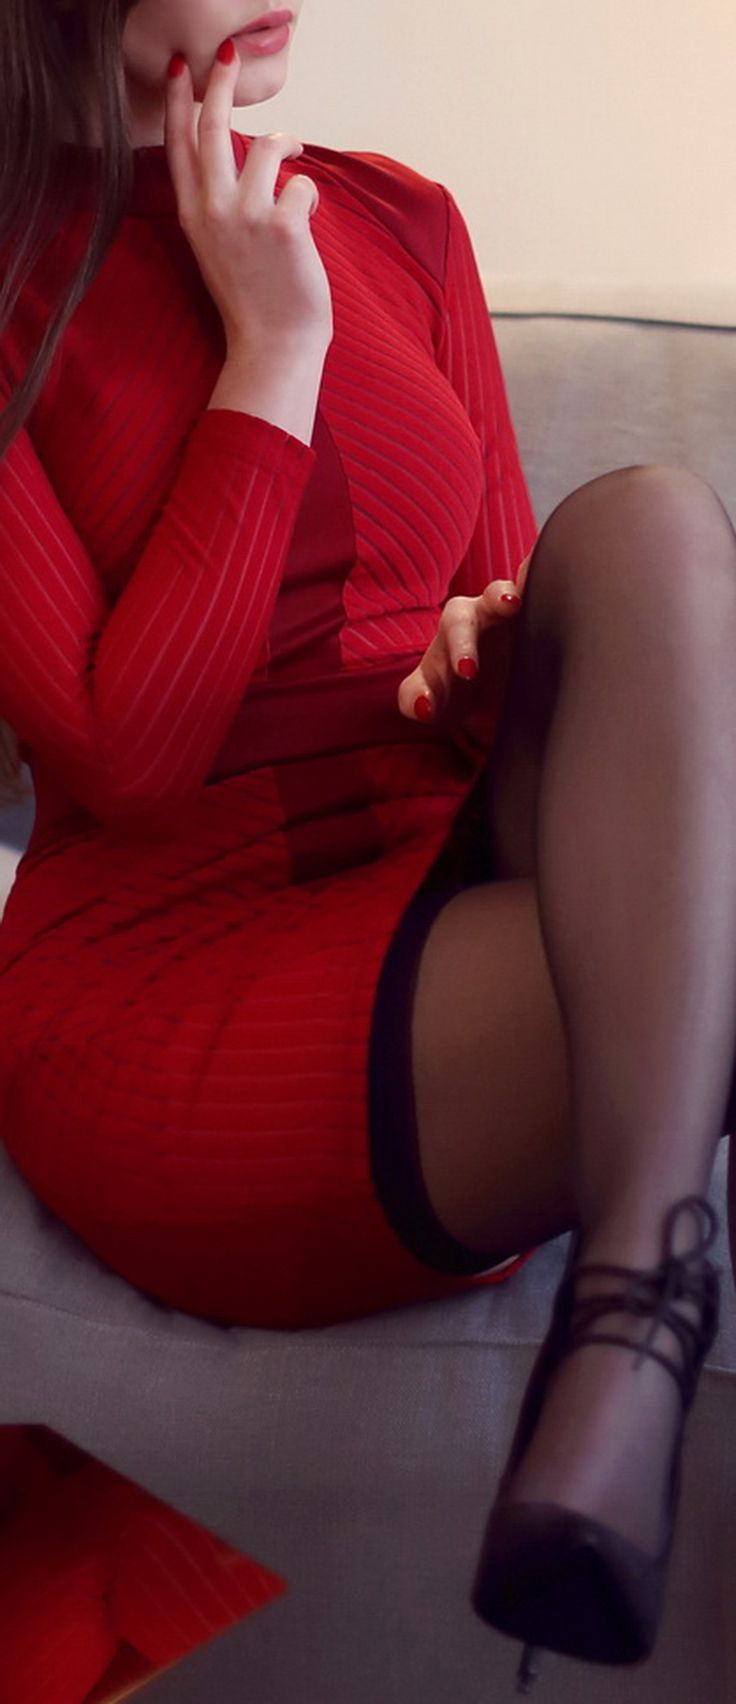 Red tight dress, stockings and lace boots on a pin